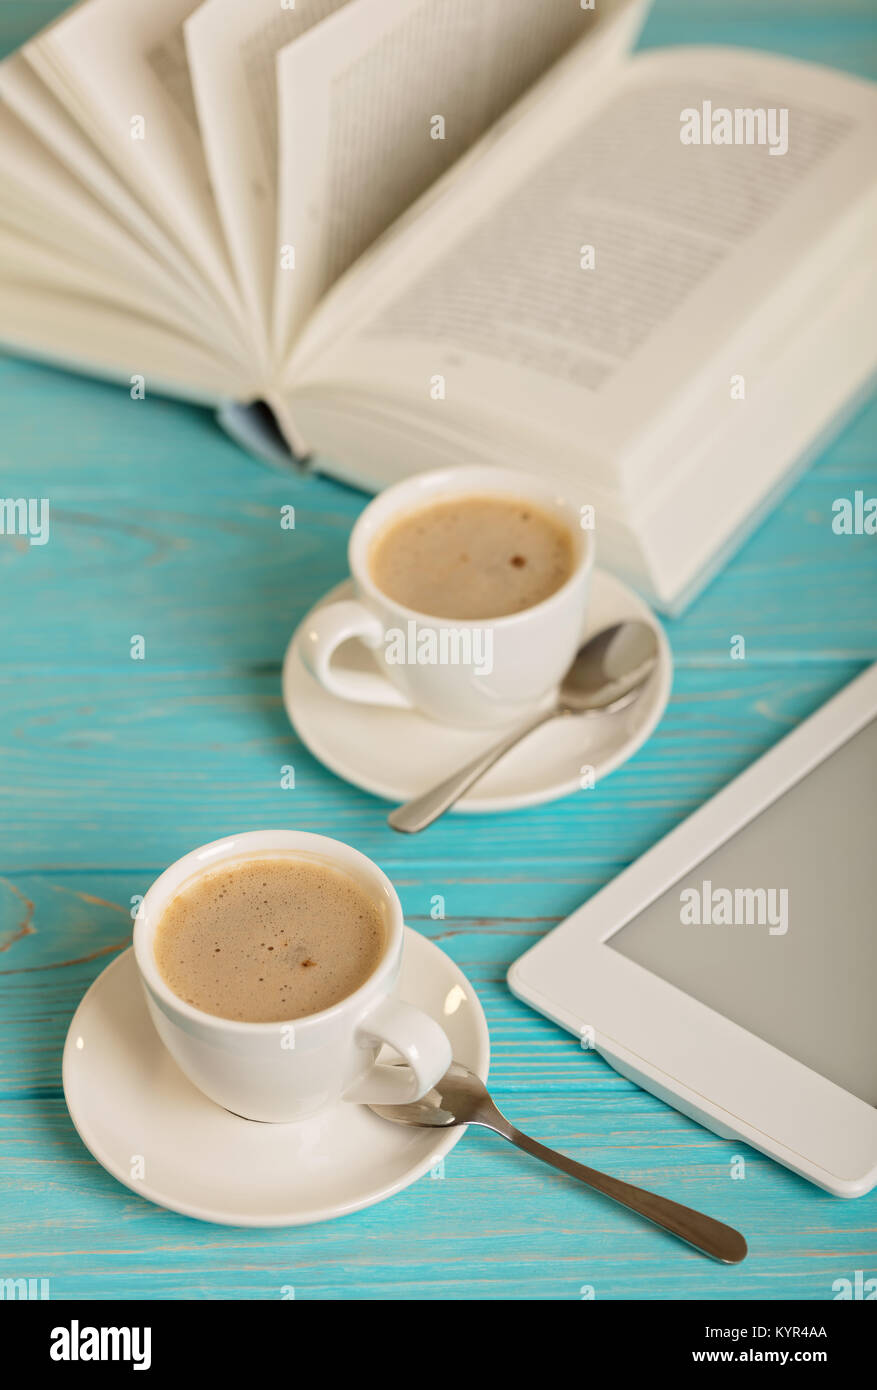 Book, e-book and two white cups of coffee on a wooden blue background. Selective focus. - Stock Image